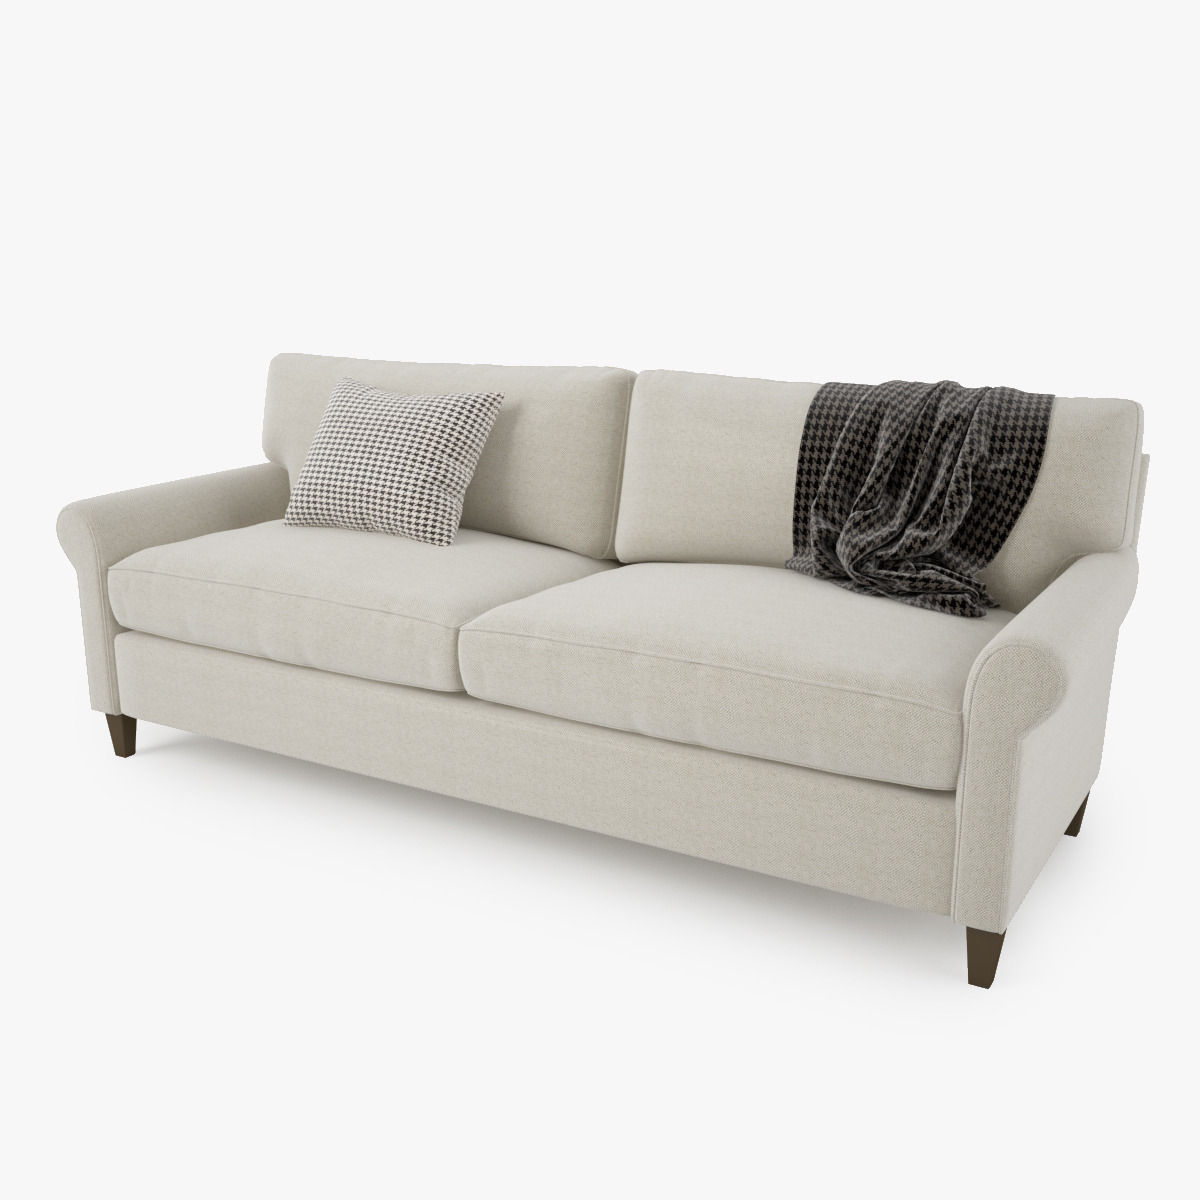 Crate And Barrel Montclair Sofa Collection 3d Model Max